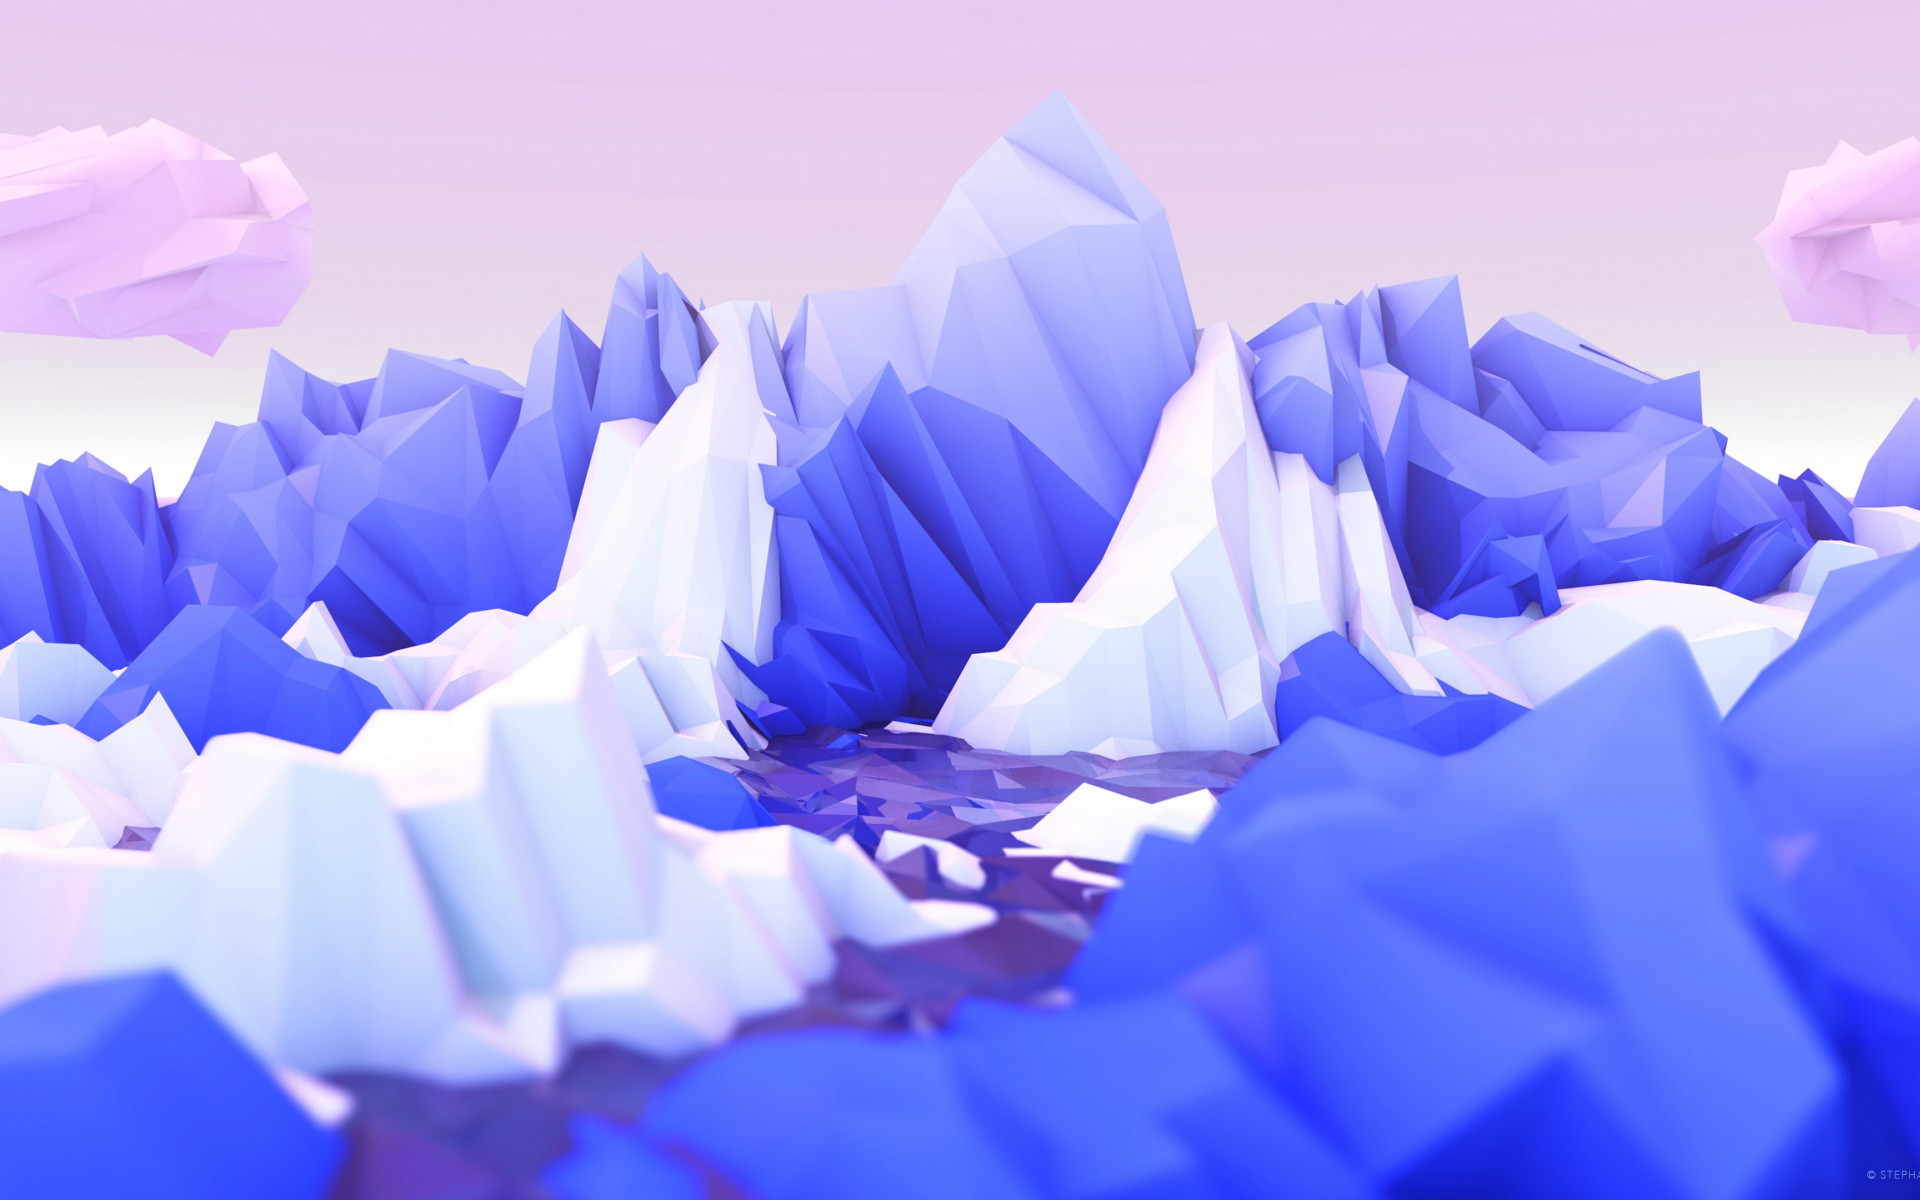 Low poly graphic design wallpaper 1920x1200